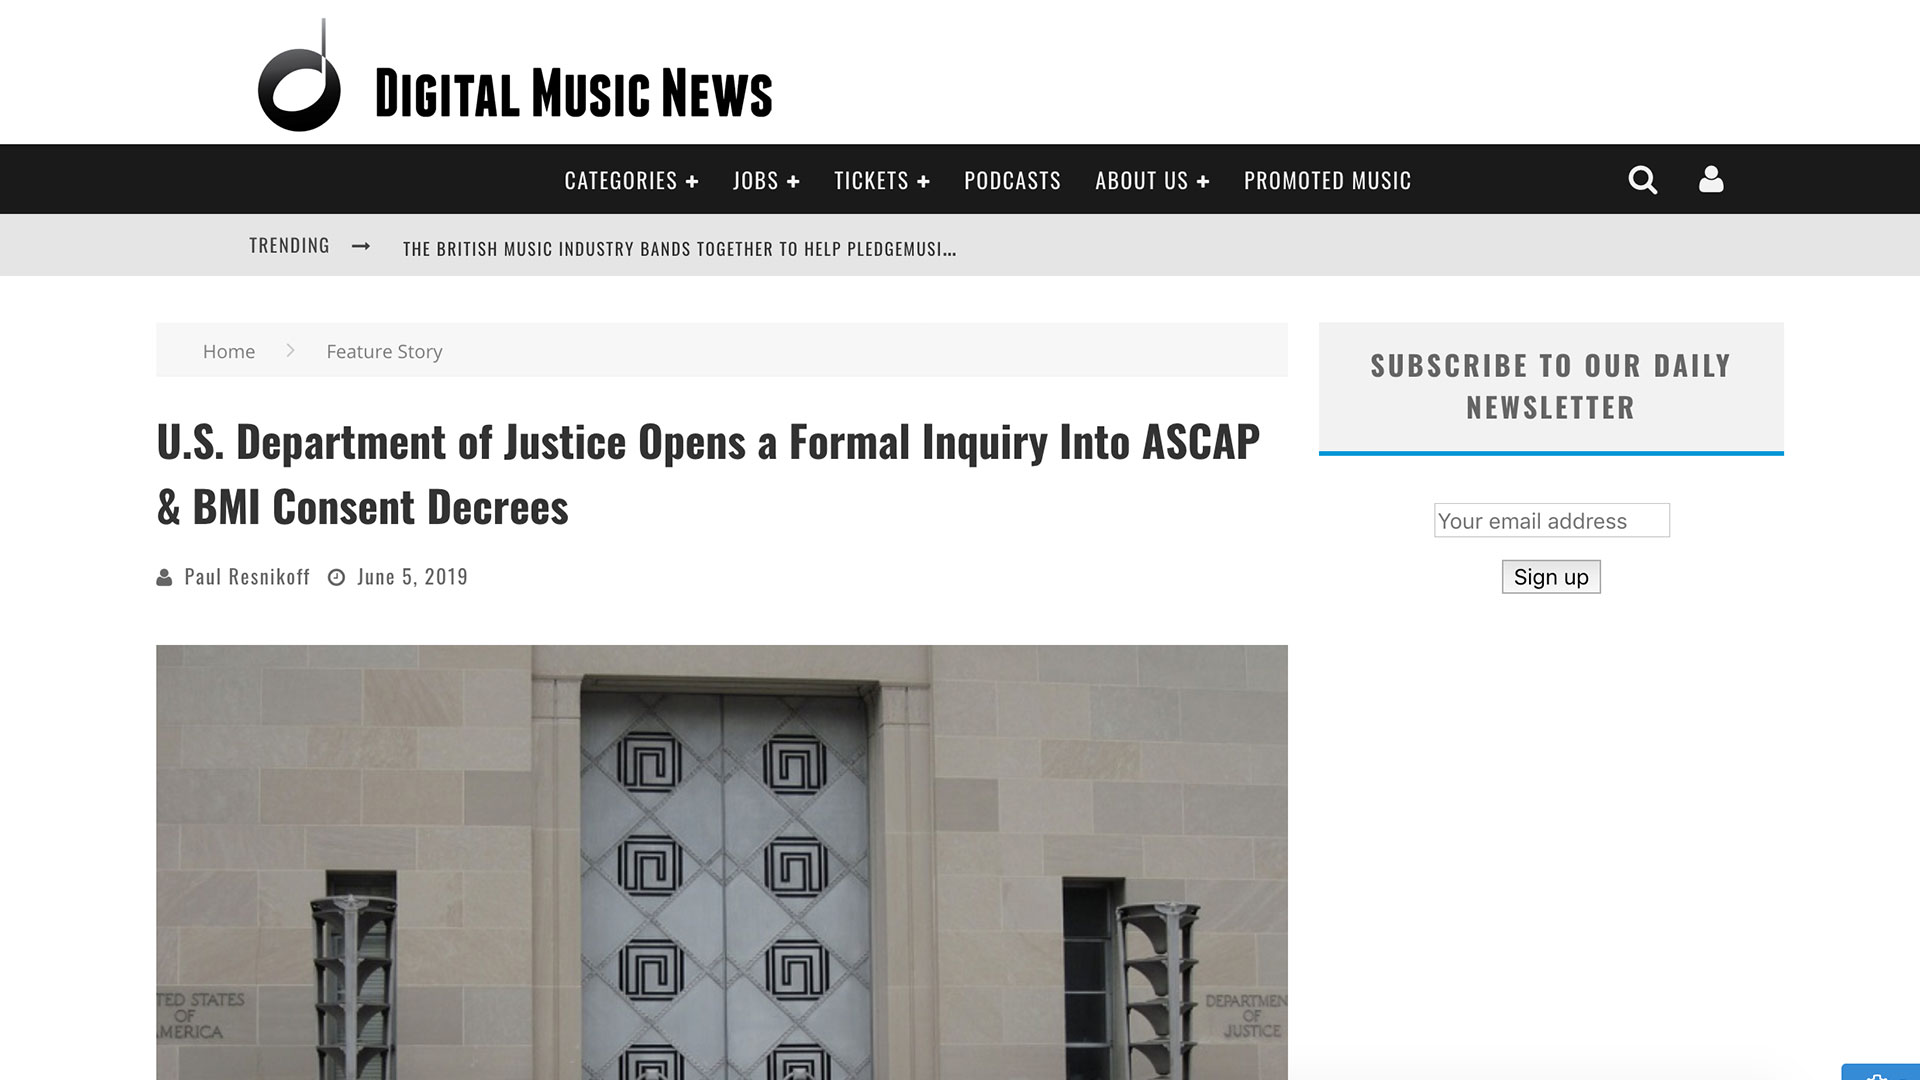 Fairness Rocks News U.S. Department of Justice Opens a Formal Inquiry Into ASCAP & BMI Consent Decrees